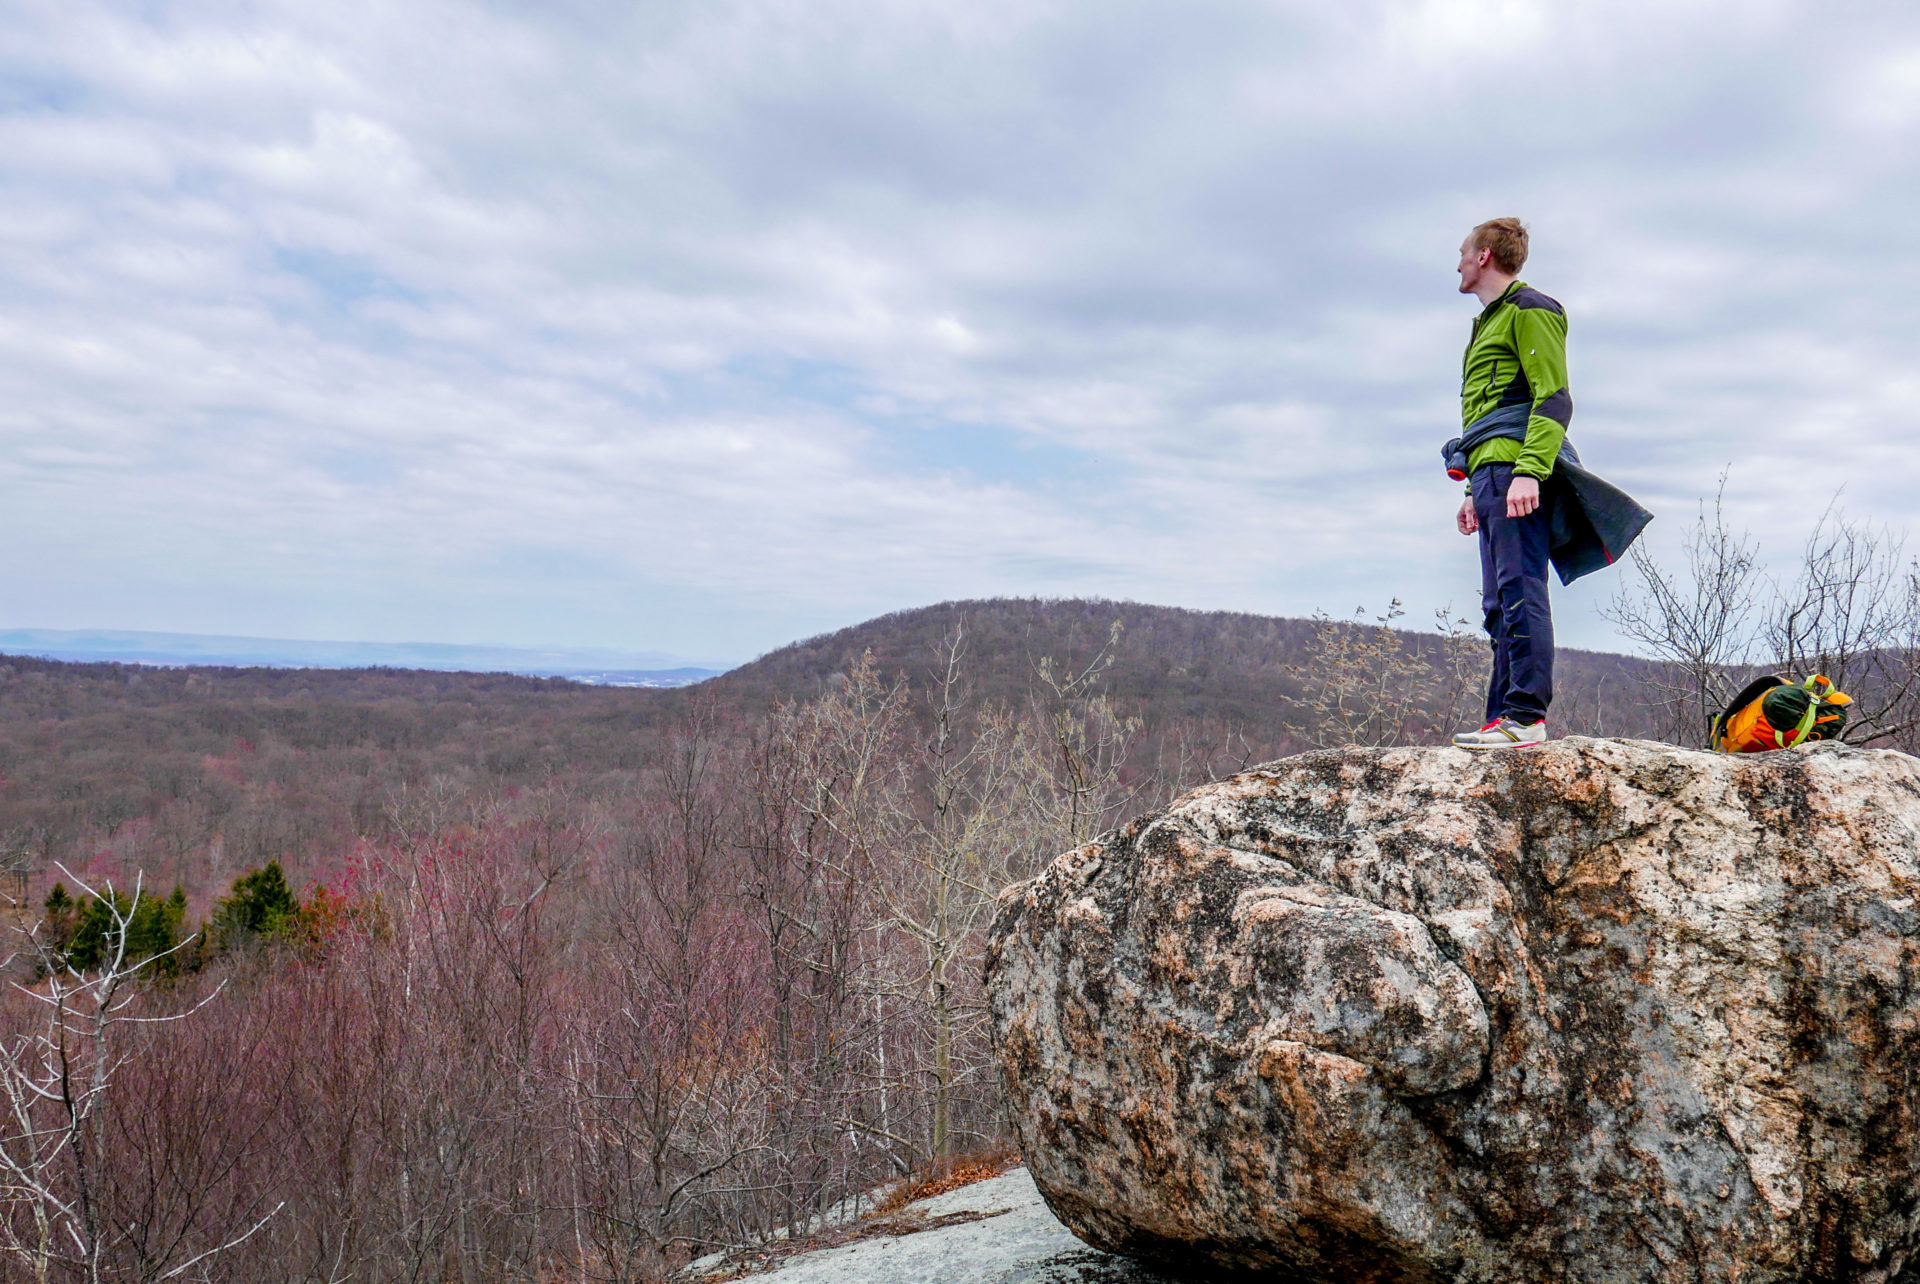 Perica looks into the distance atop a glacial erratic